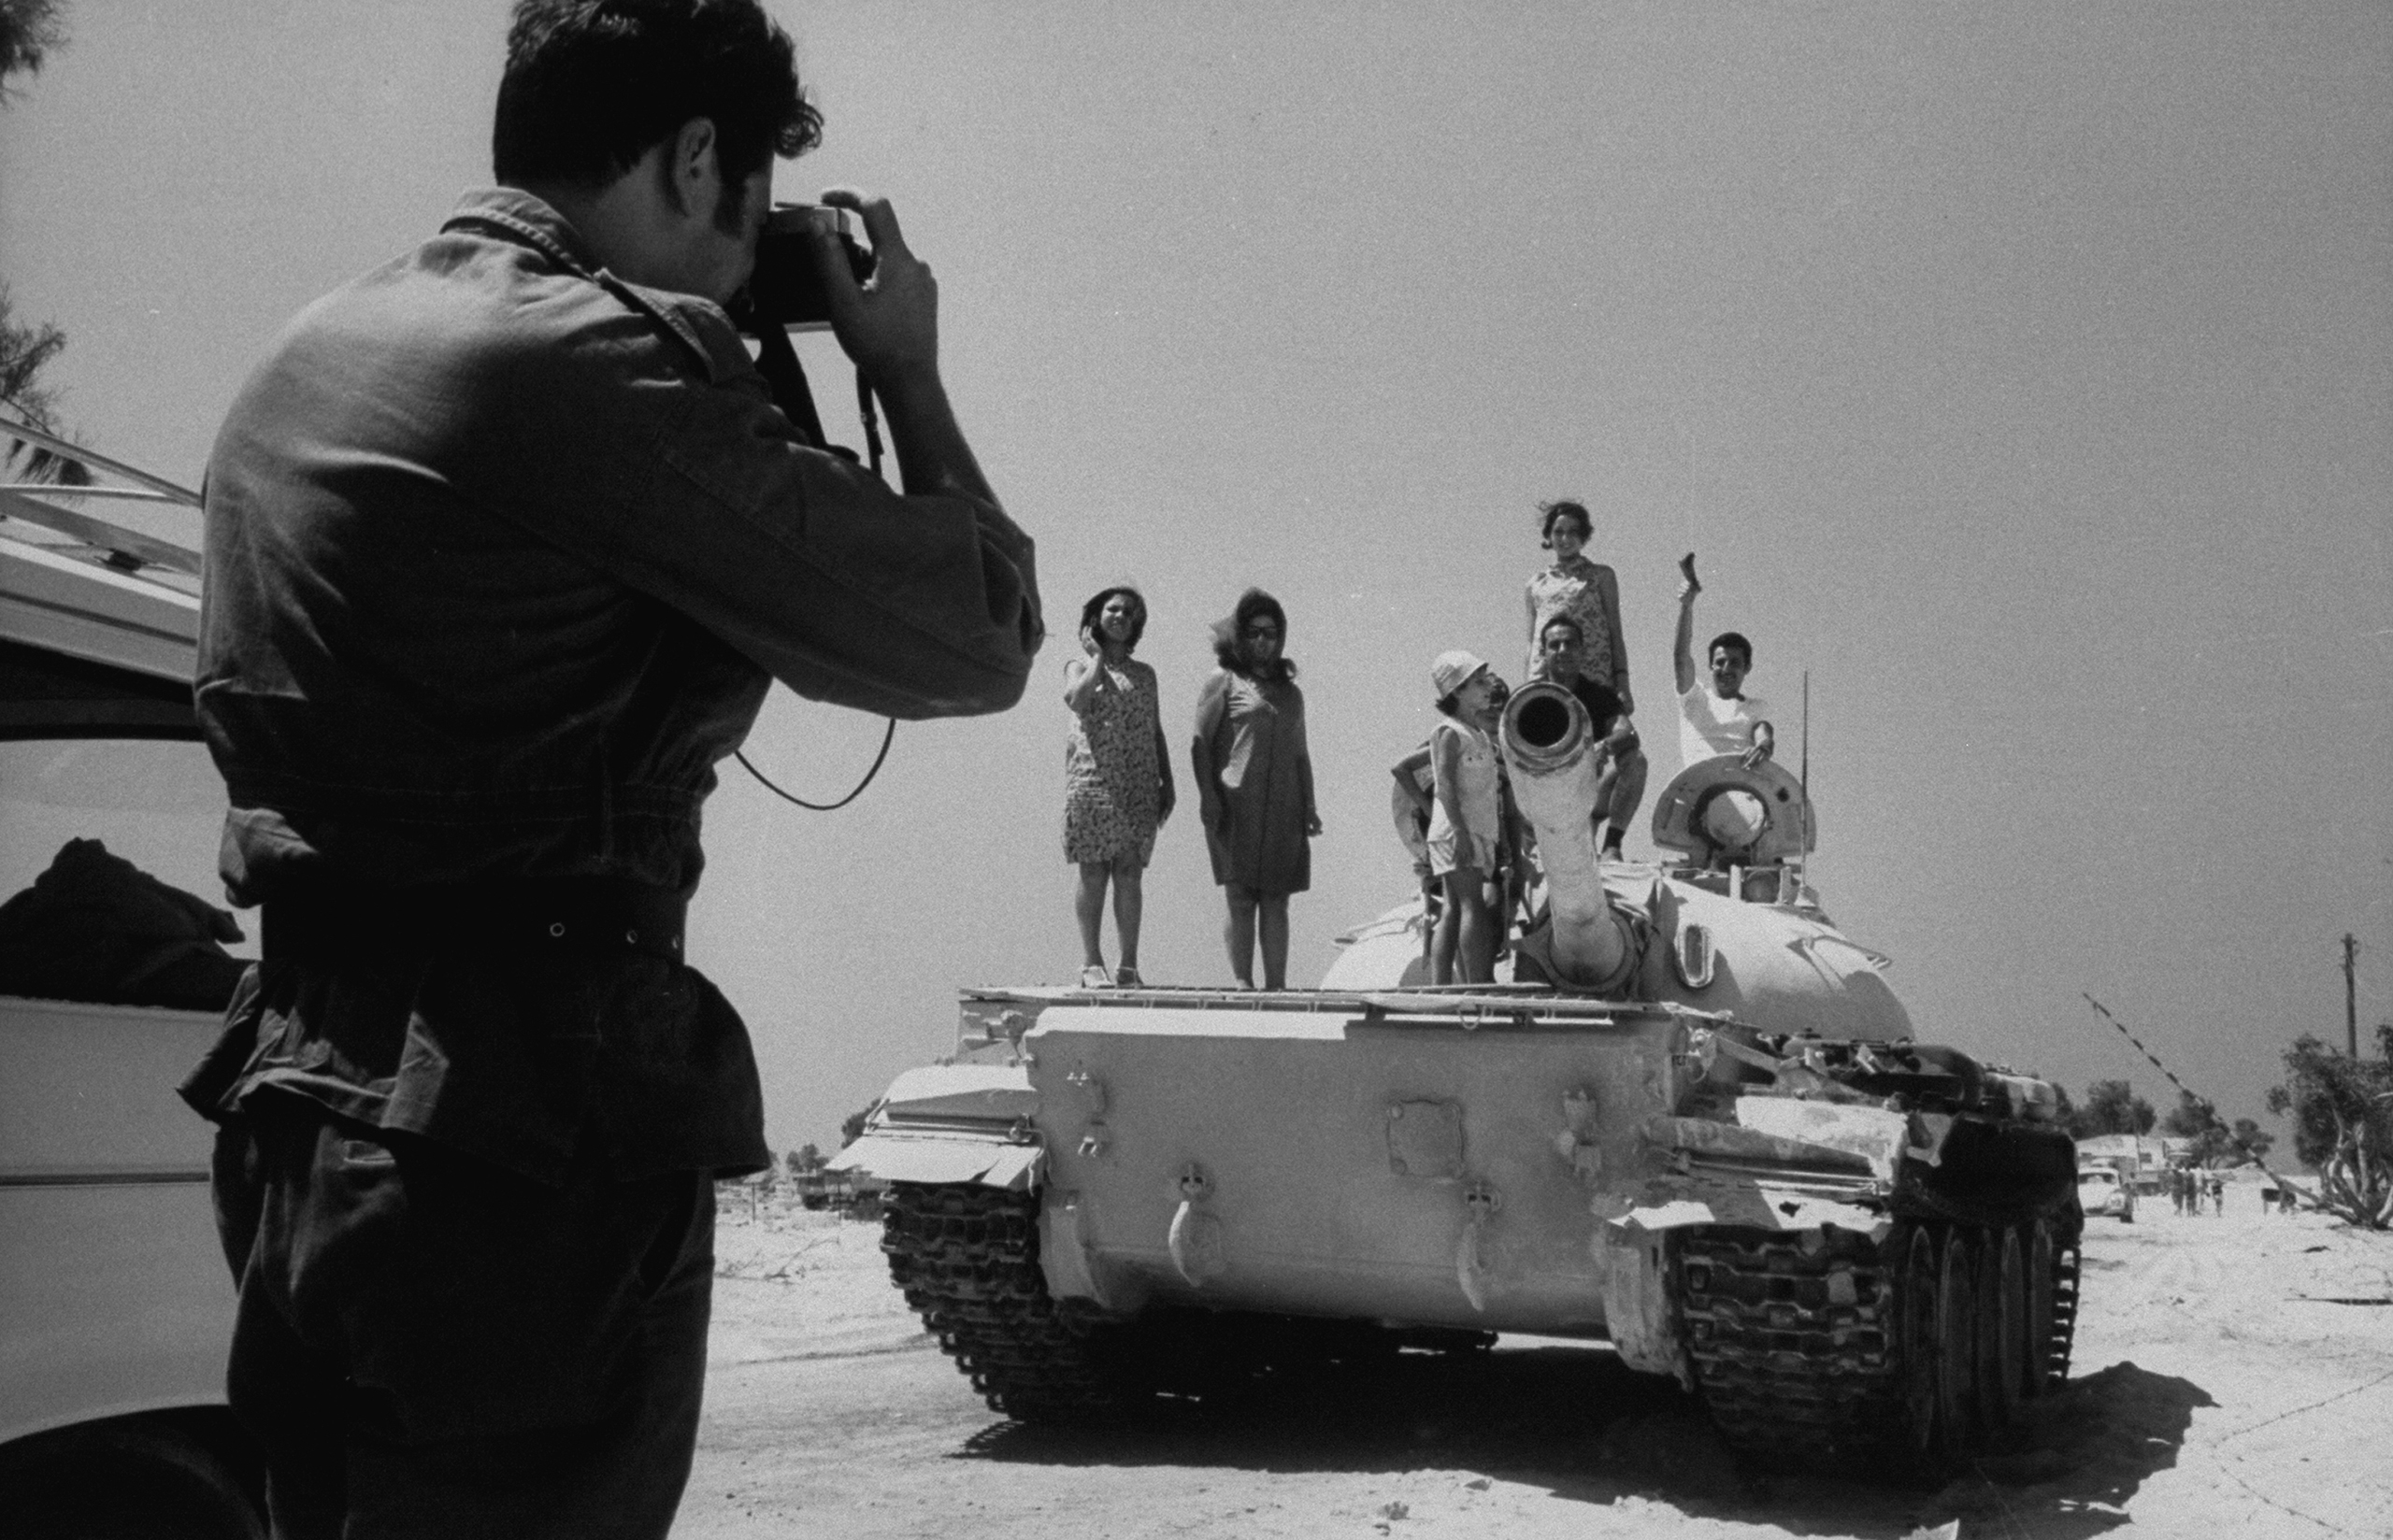 Israeli tourists inspecting captured Egyptian weapons, on their visit to Gaza after the war, 1967.